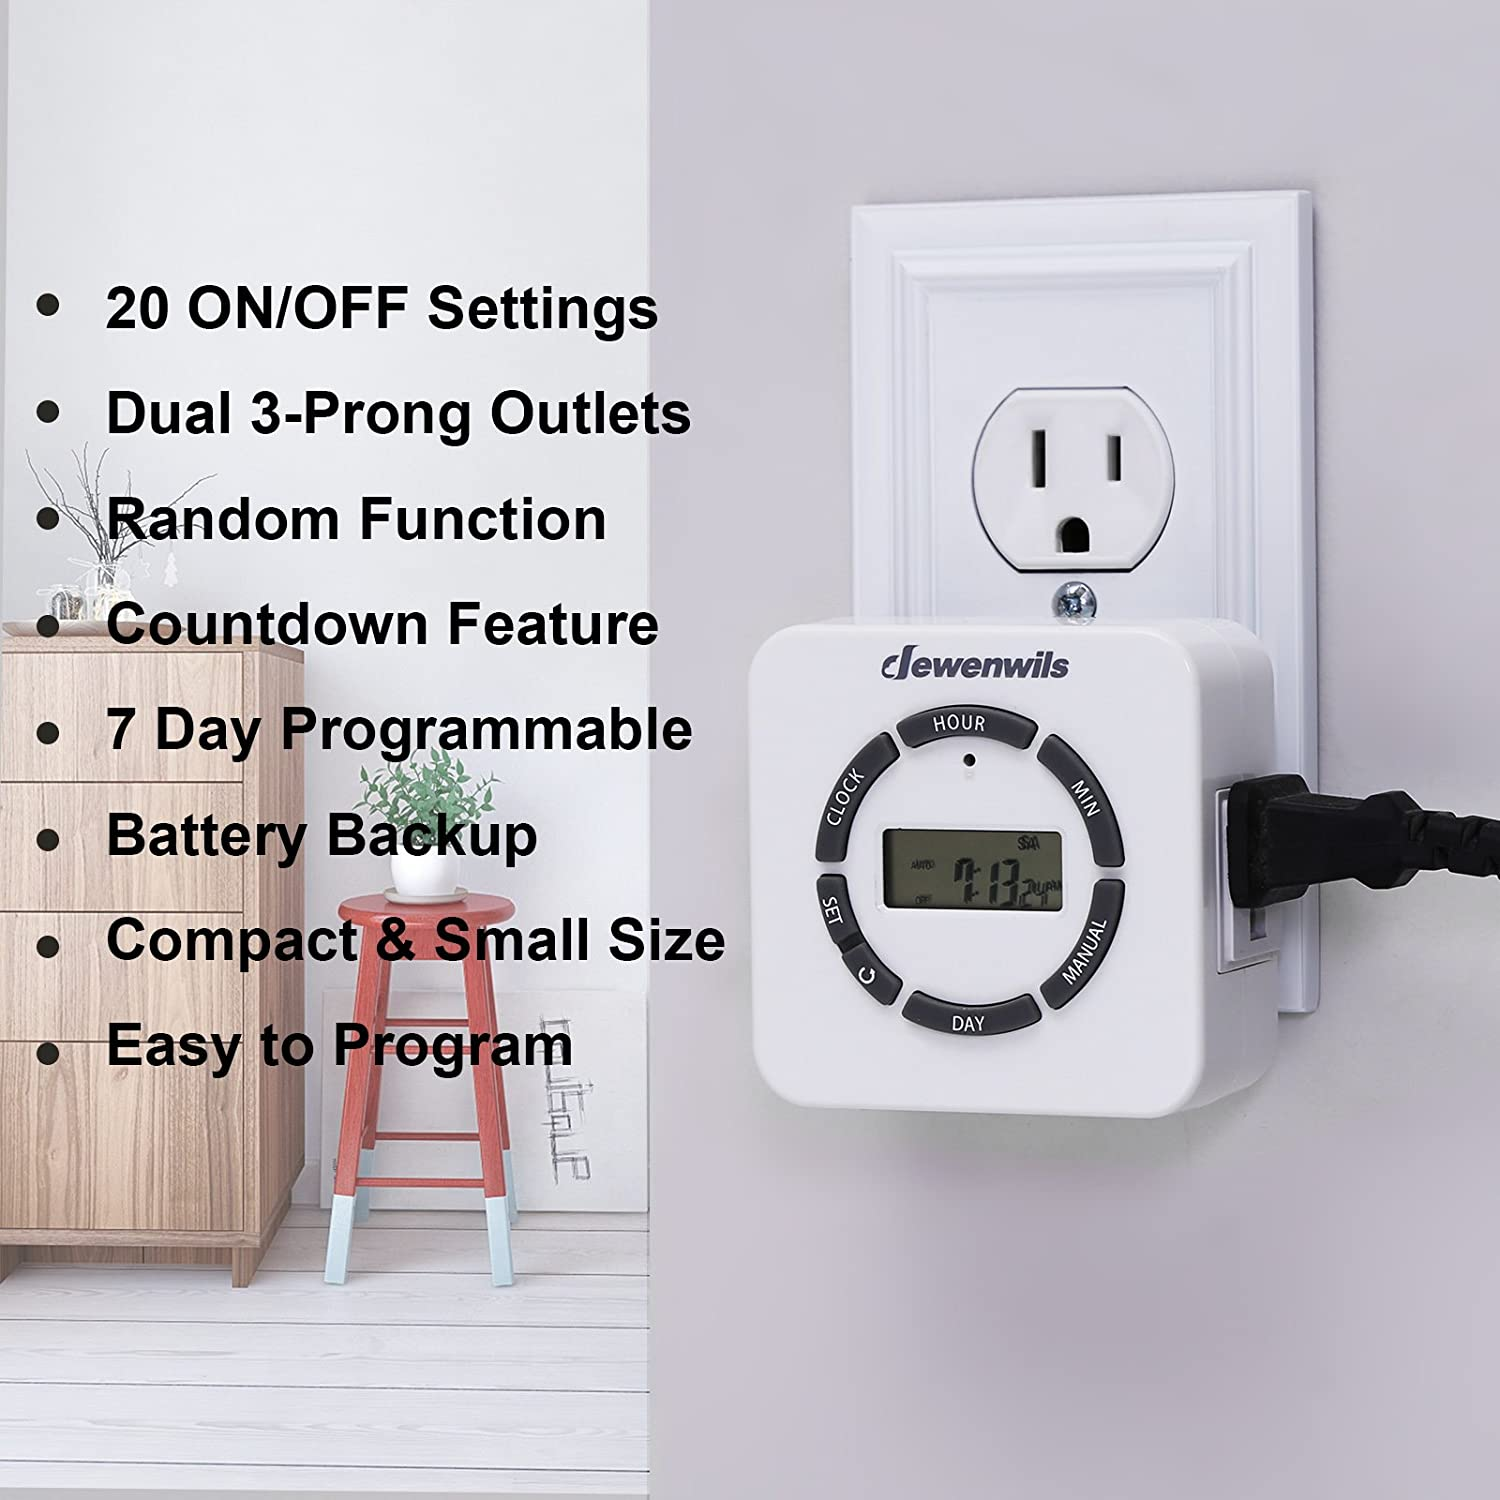 Unique 20 Amp Outlet Festooning - Everything You Need to Know About ...